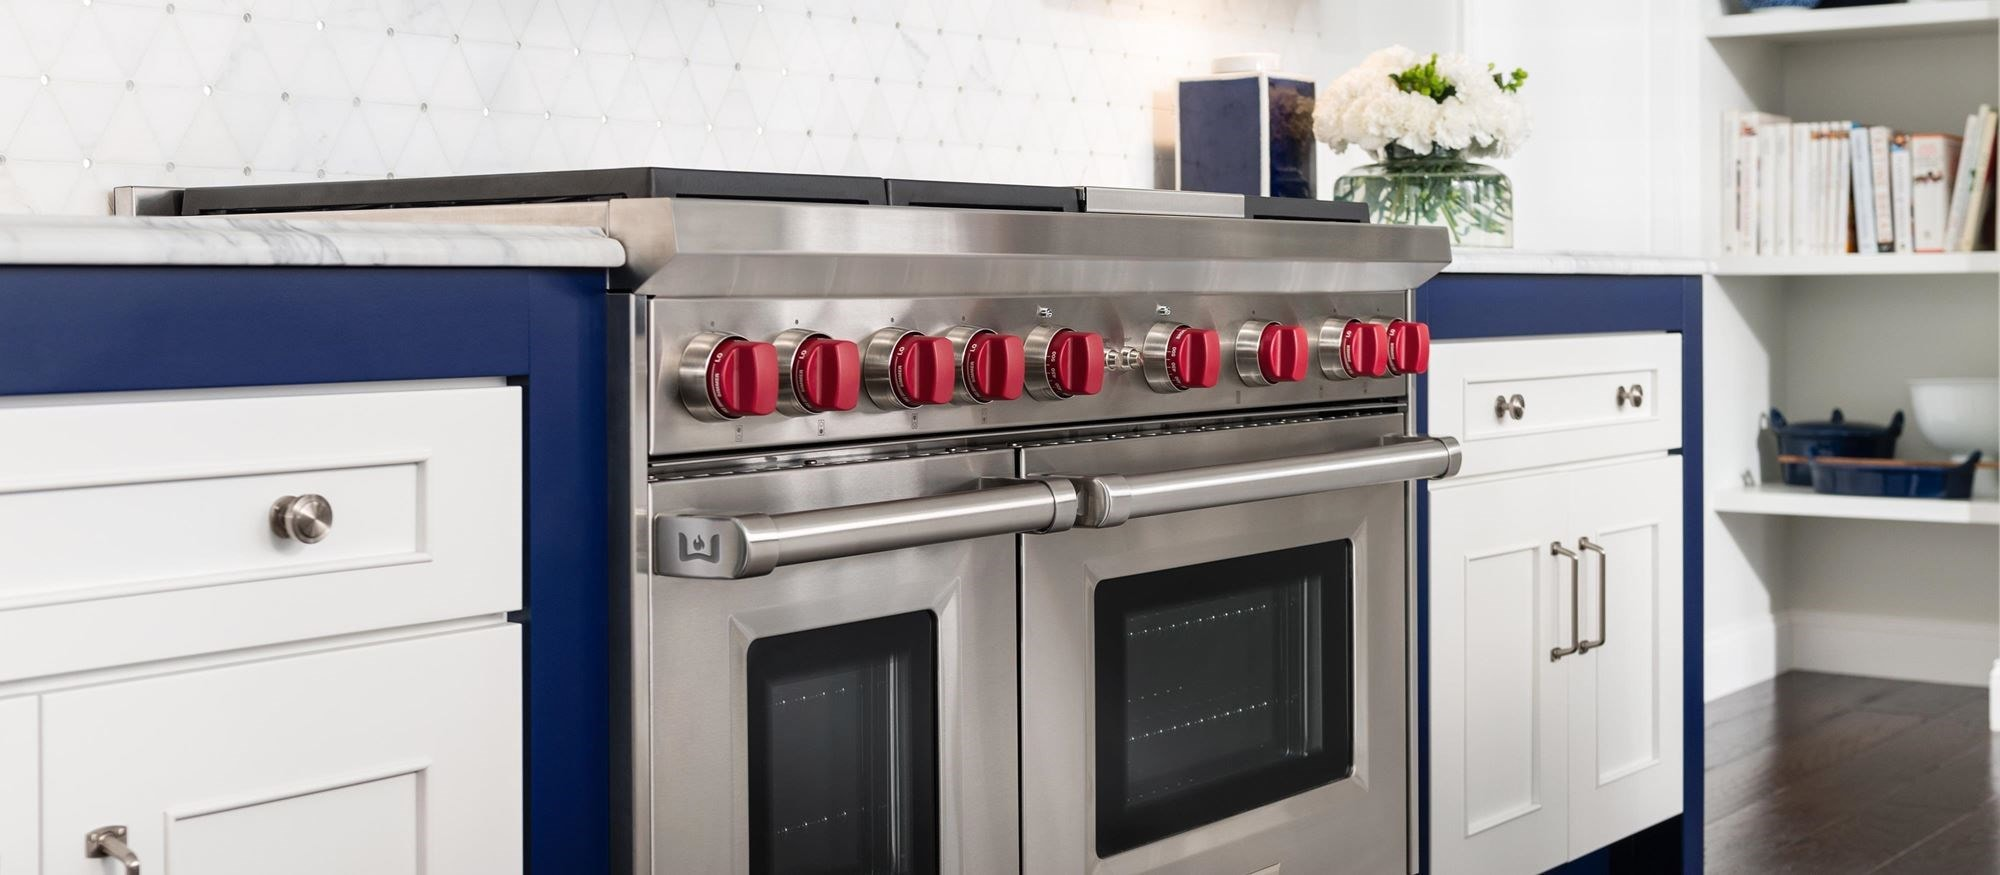 48 Gas Range 6 Burners And Infrared Charbroiler